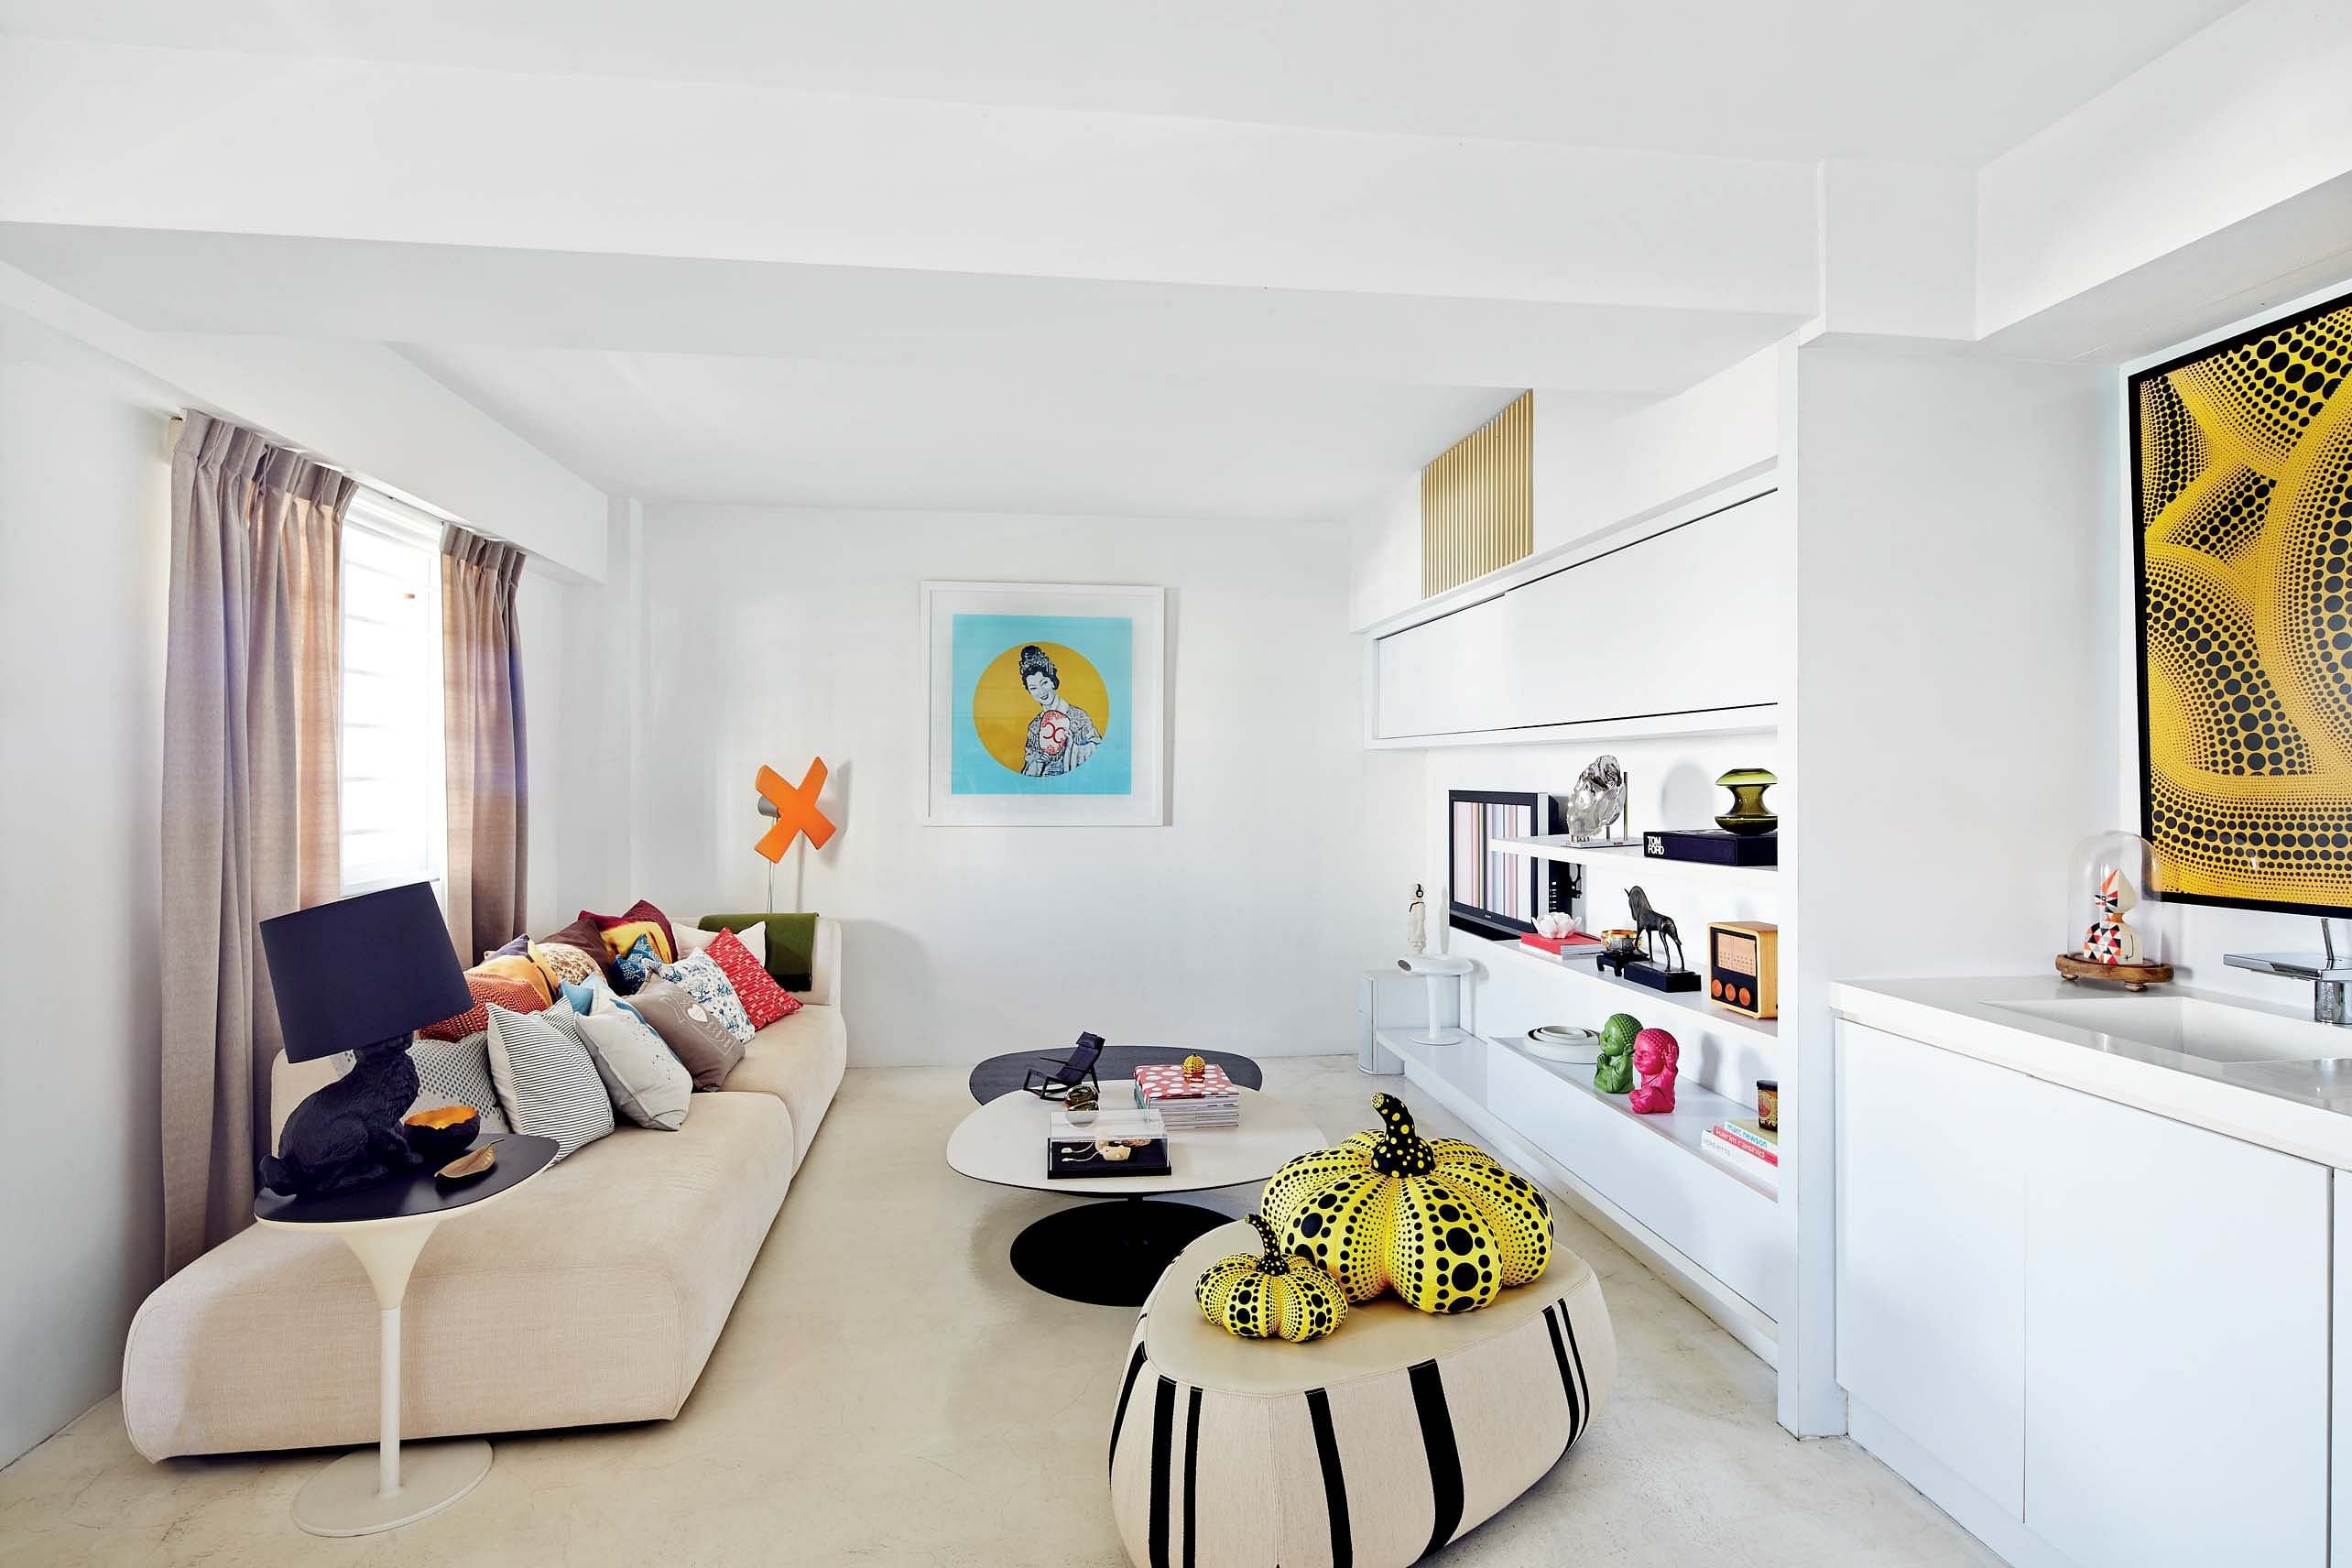 The Living Room Candidate - Living Room Ideas